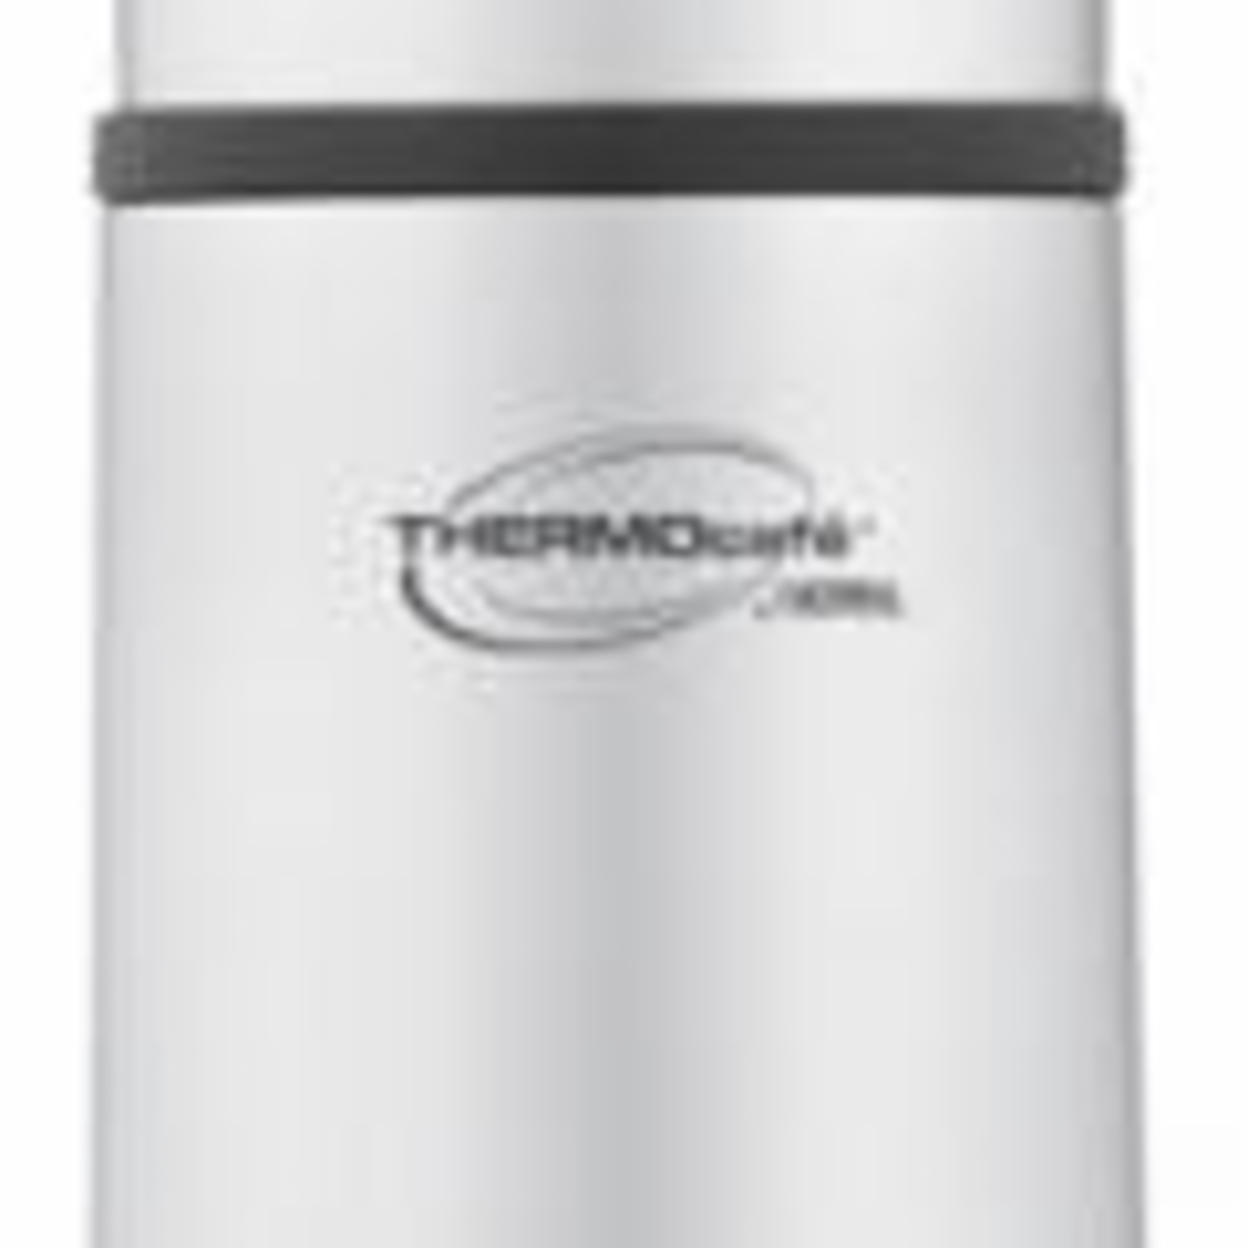 Thermos Df2150Tri6 17 oz. Thermo Cafe Stainless Steel Compact Bottle 5a3c821be2246117b4267c12